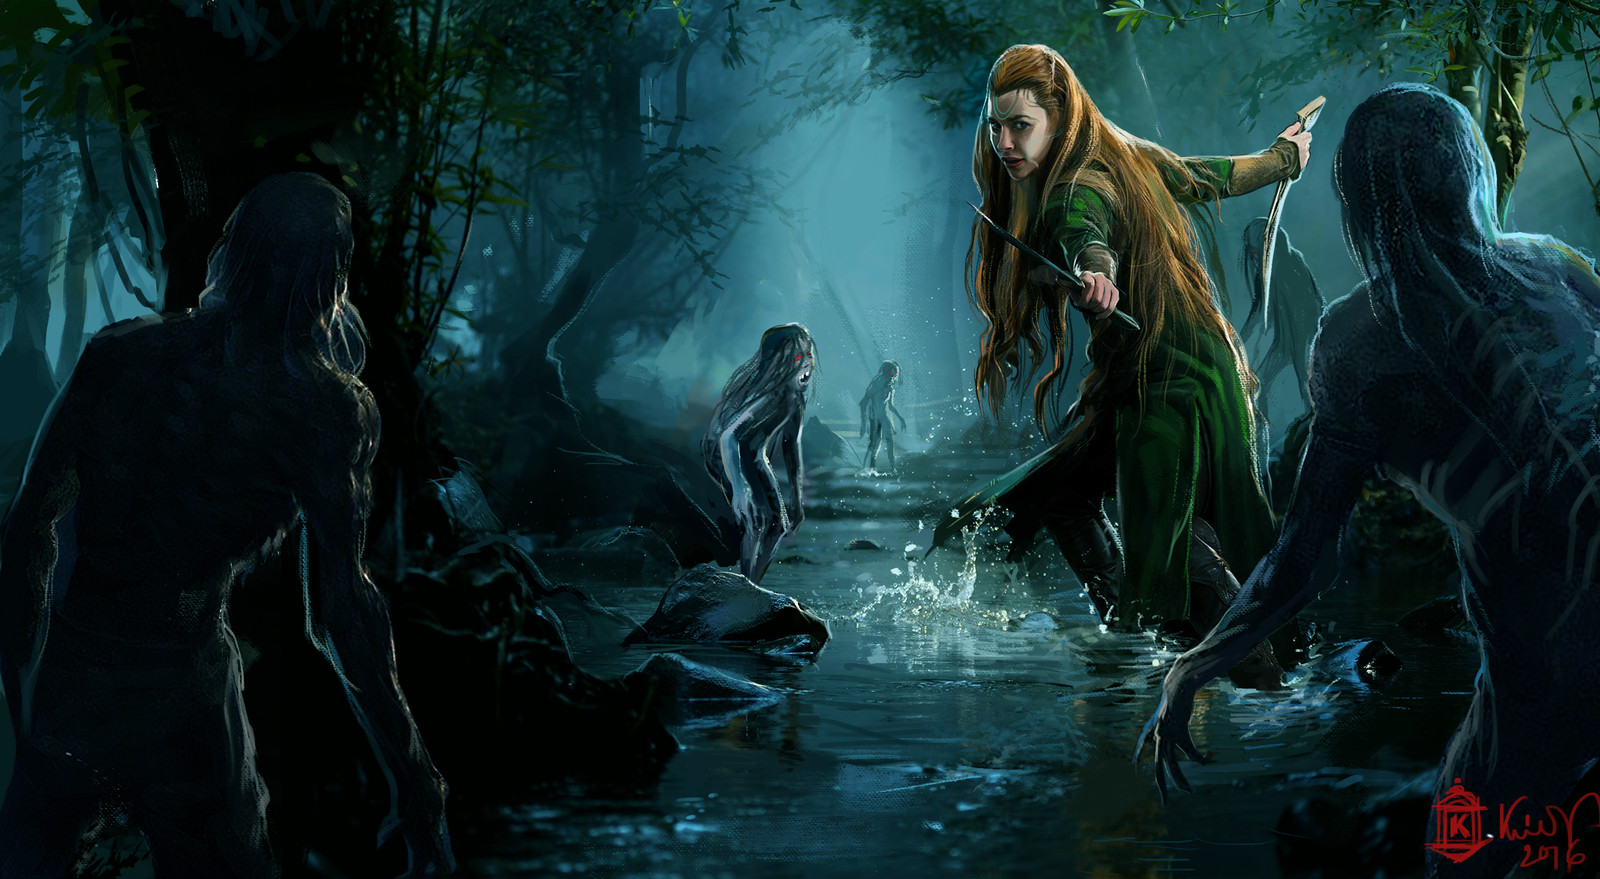 lady in a swamp land .